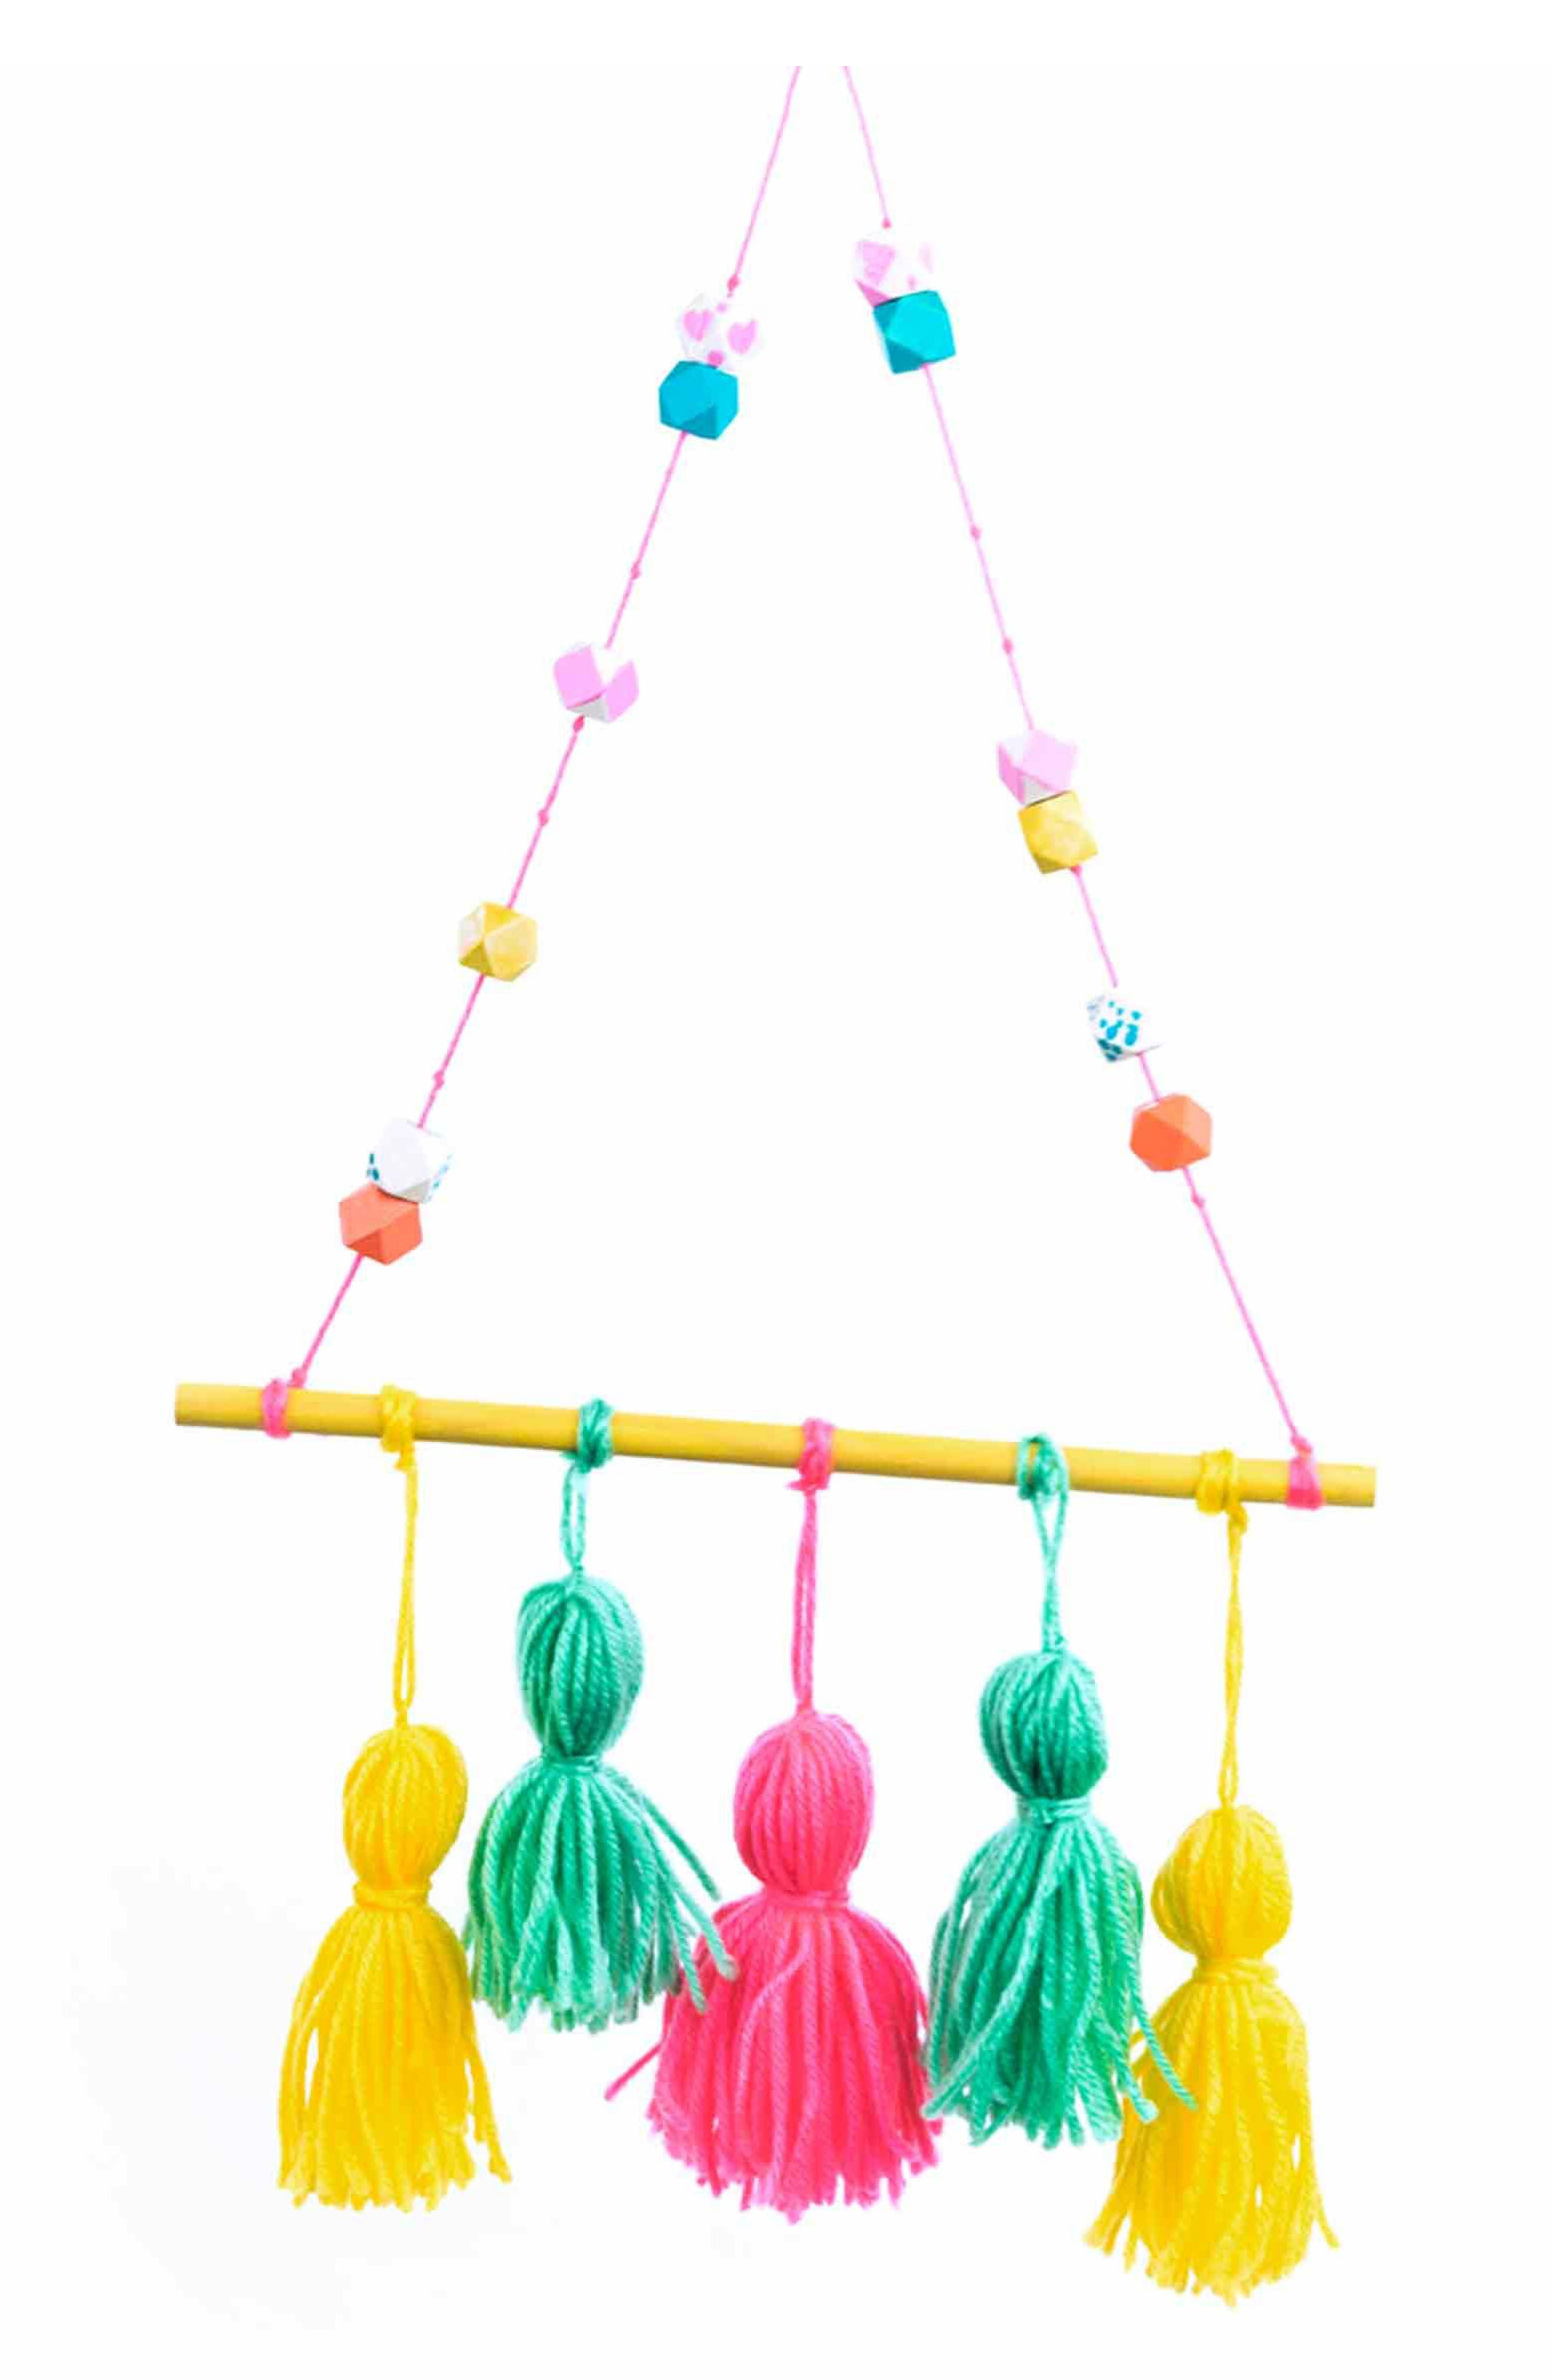 Make Your Own Tassel Wall Hanging,                             Main thumbnail 1, color,                             250